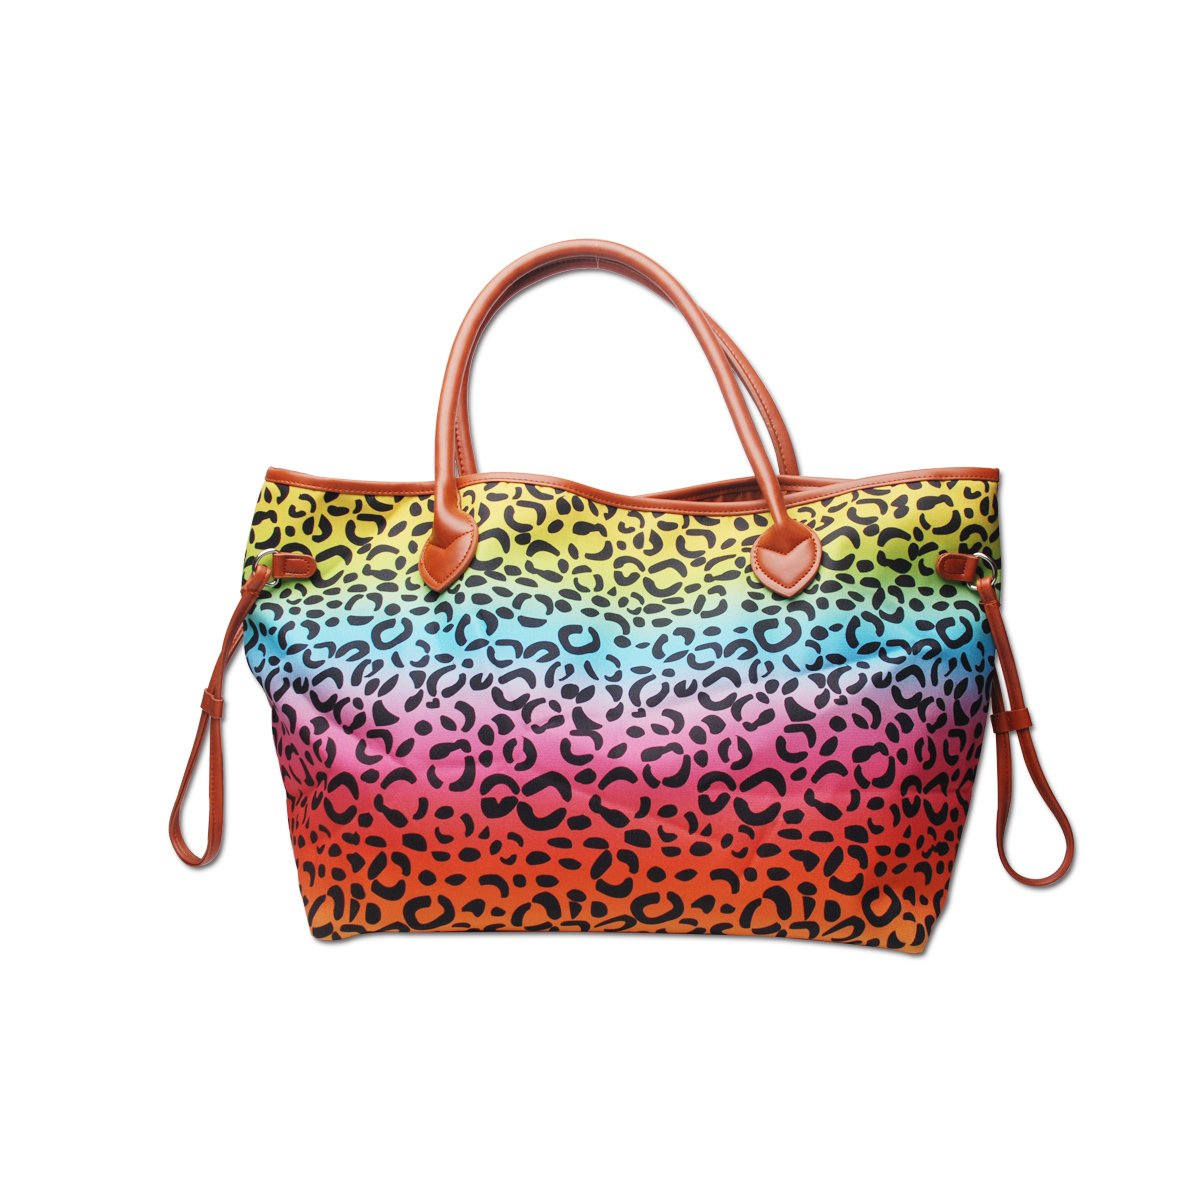 READY TO SHIP * Rainbow Leopard Tote